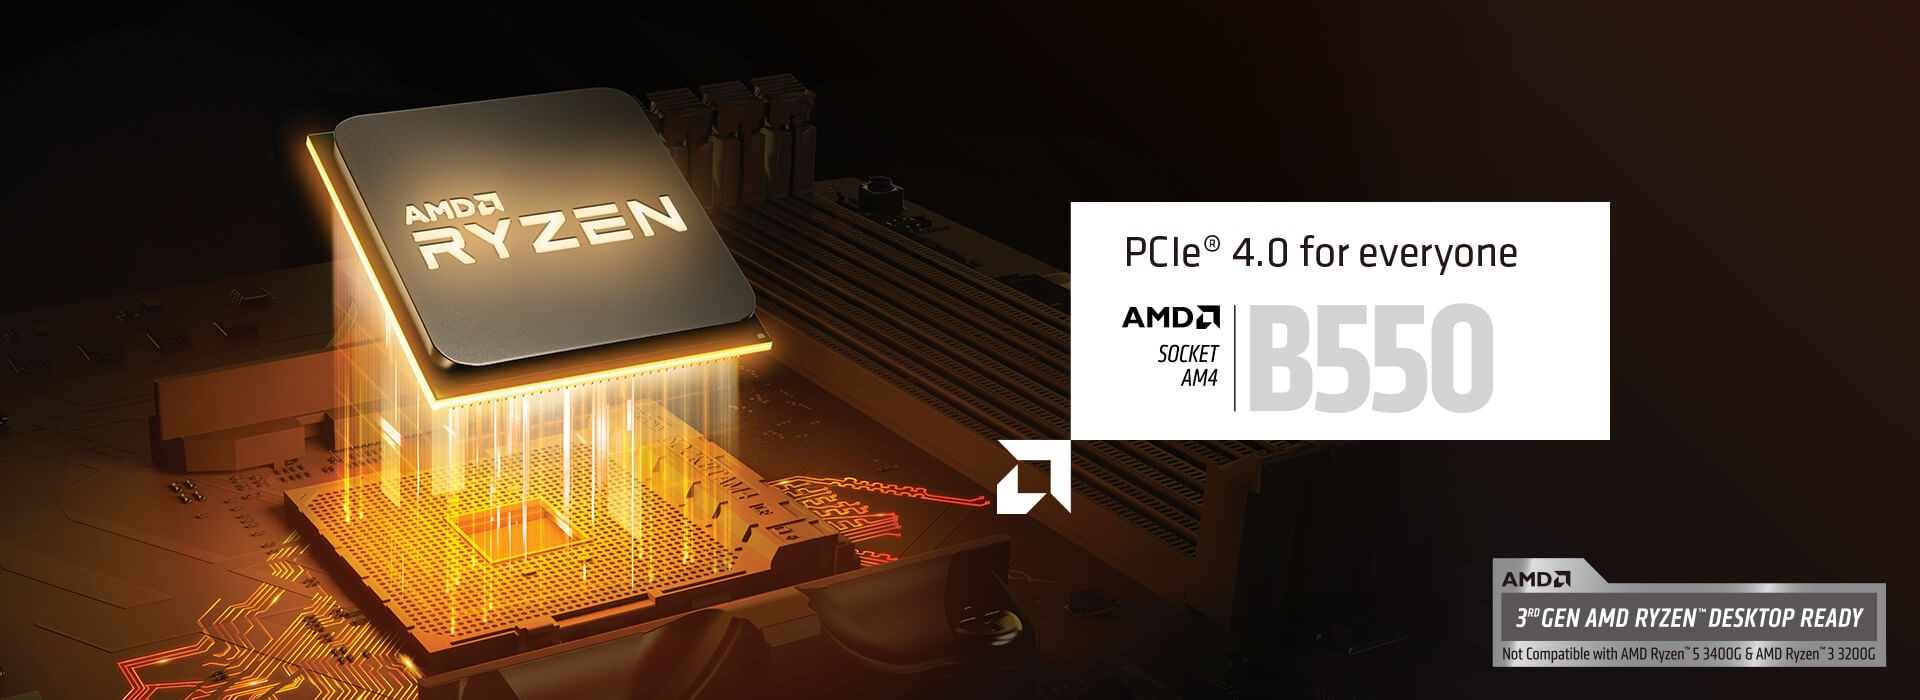 B550 PCIe 4.0 For everyone